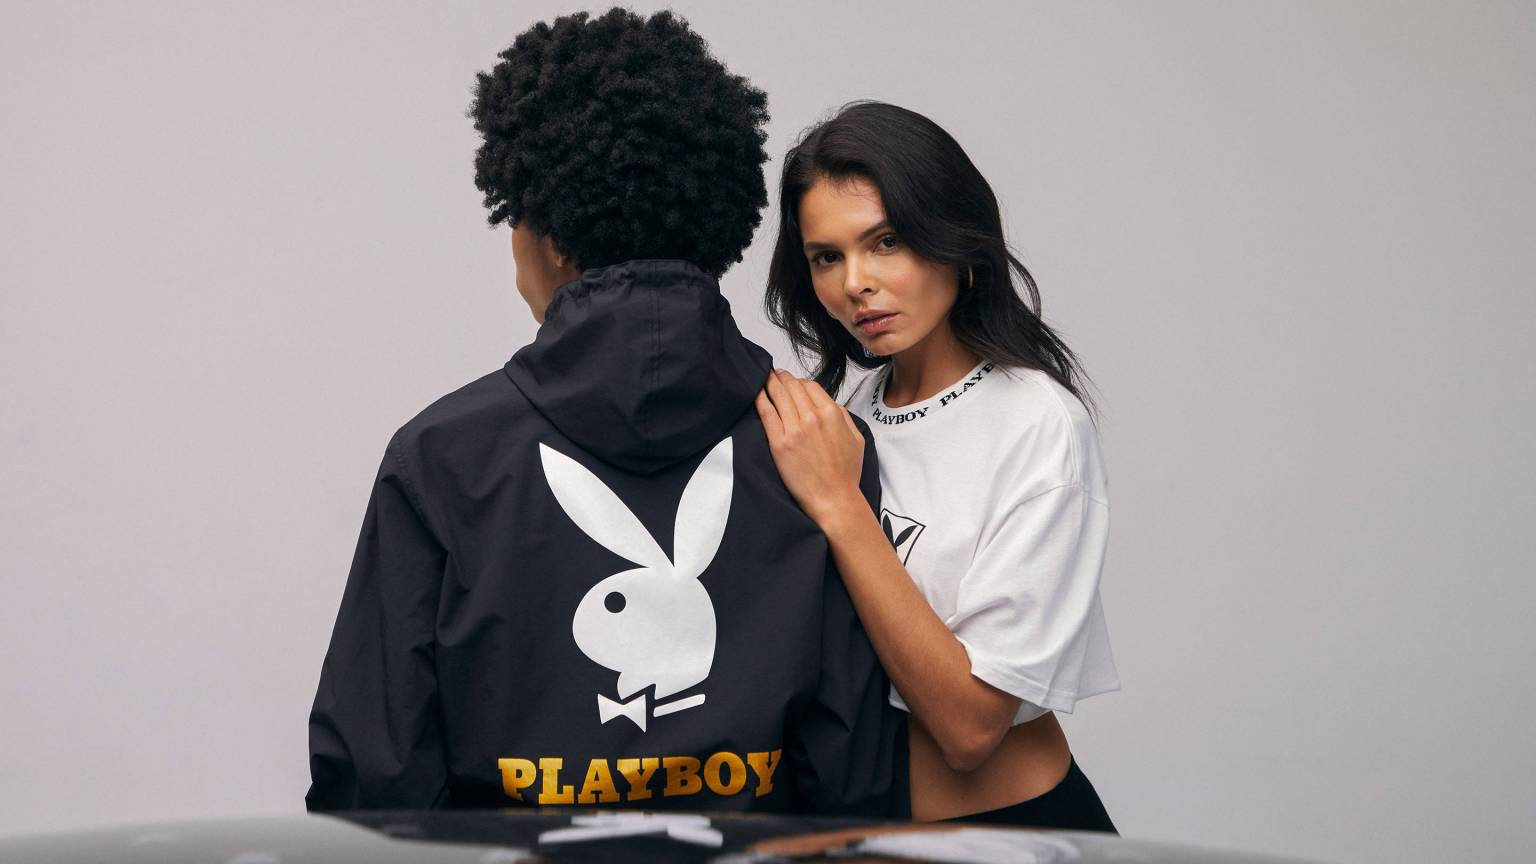 Playboy for PacSun SS19 Is All About New Wave, Lux Sportswear